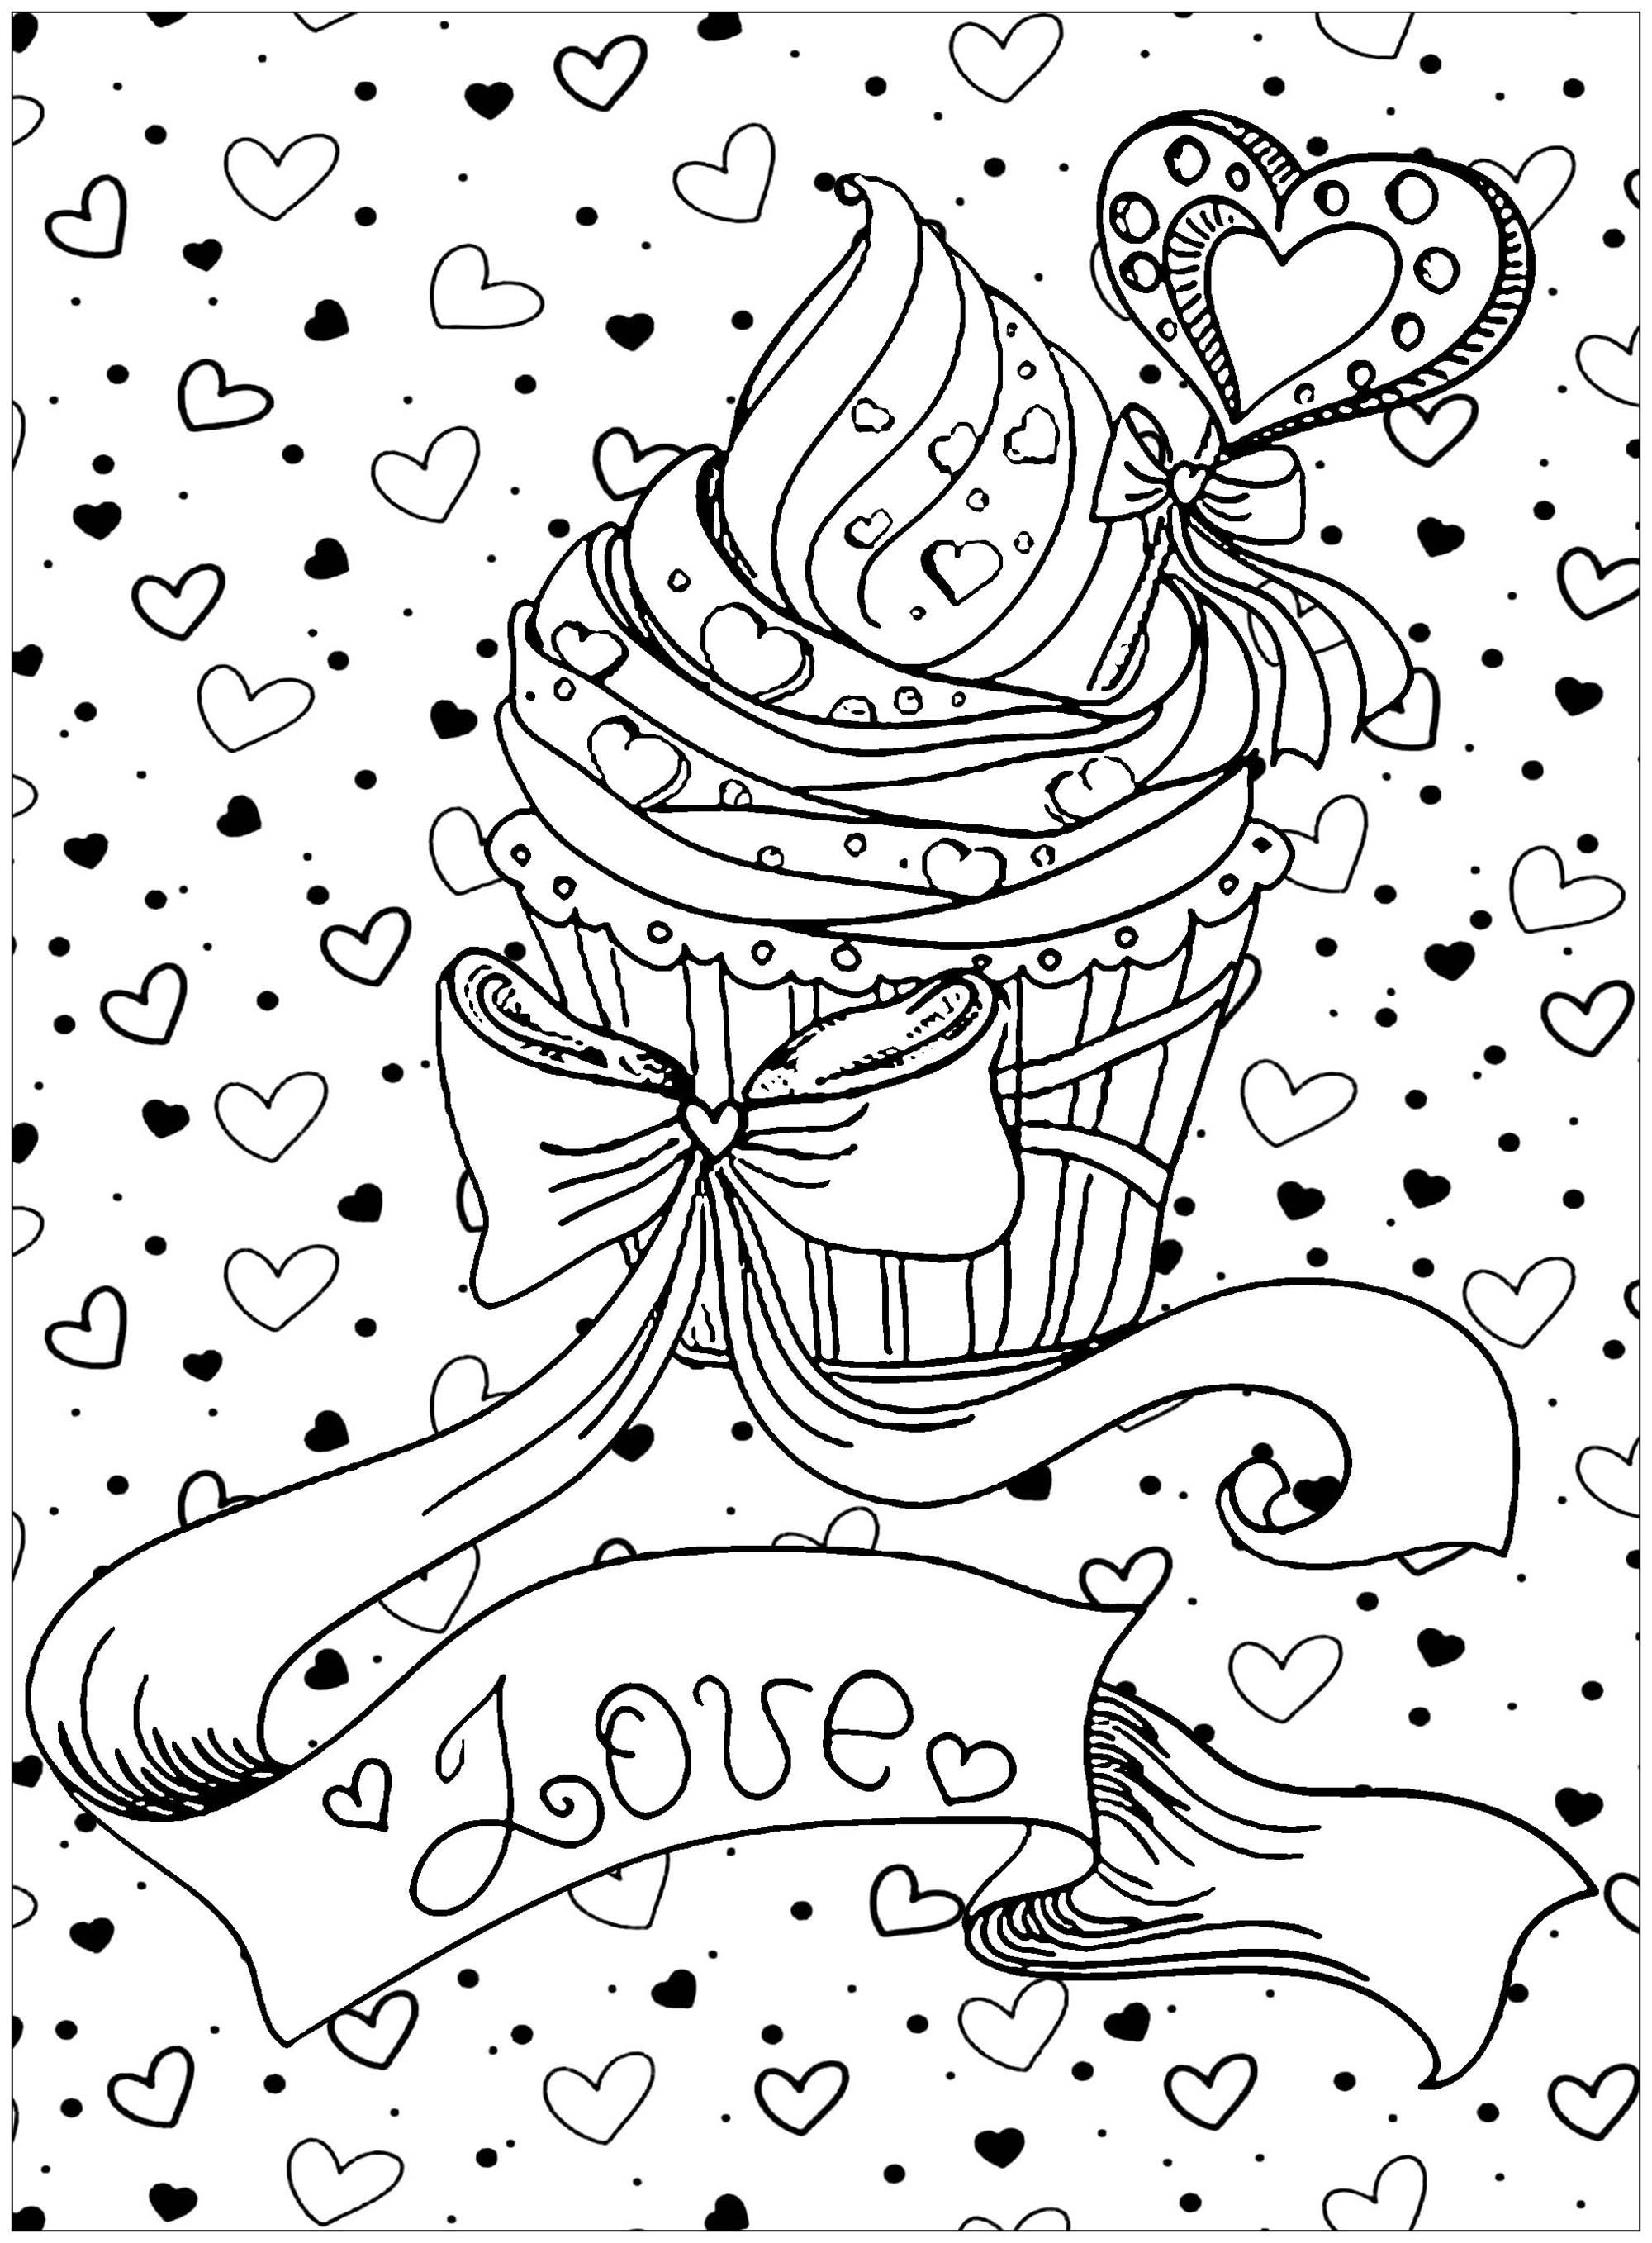 Cupcake Love Justcolor Valentines Day Coloring Page Heart Coloring Pages Love Coloring Pages